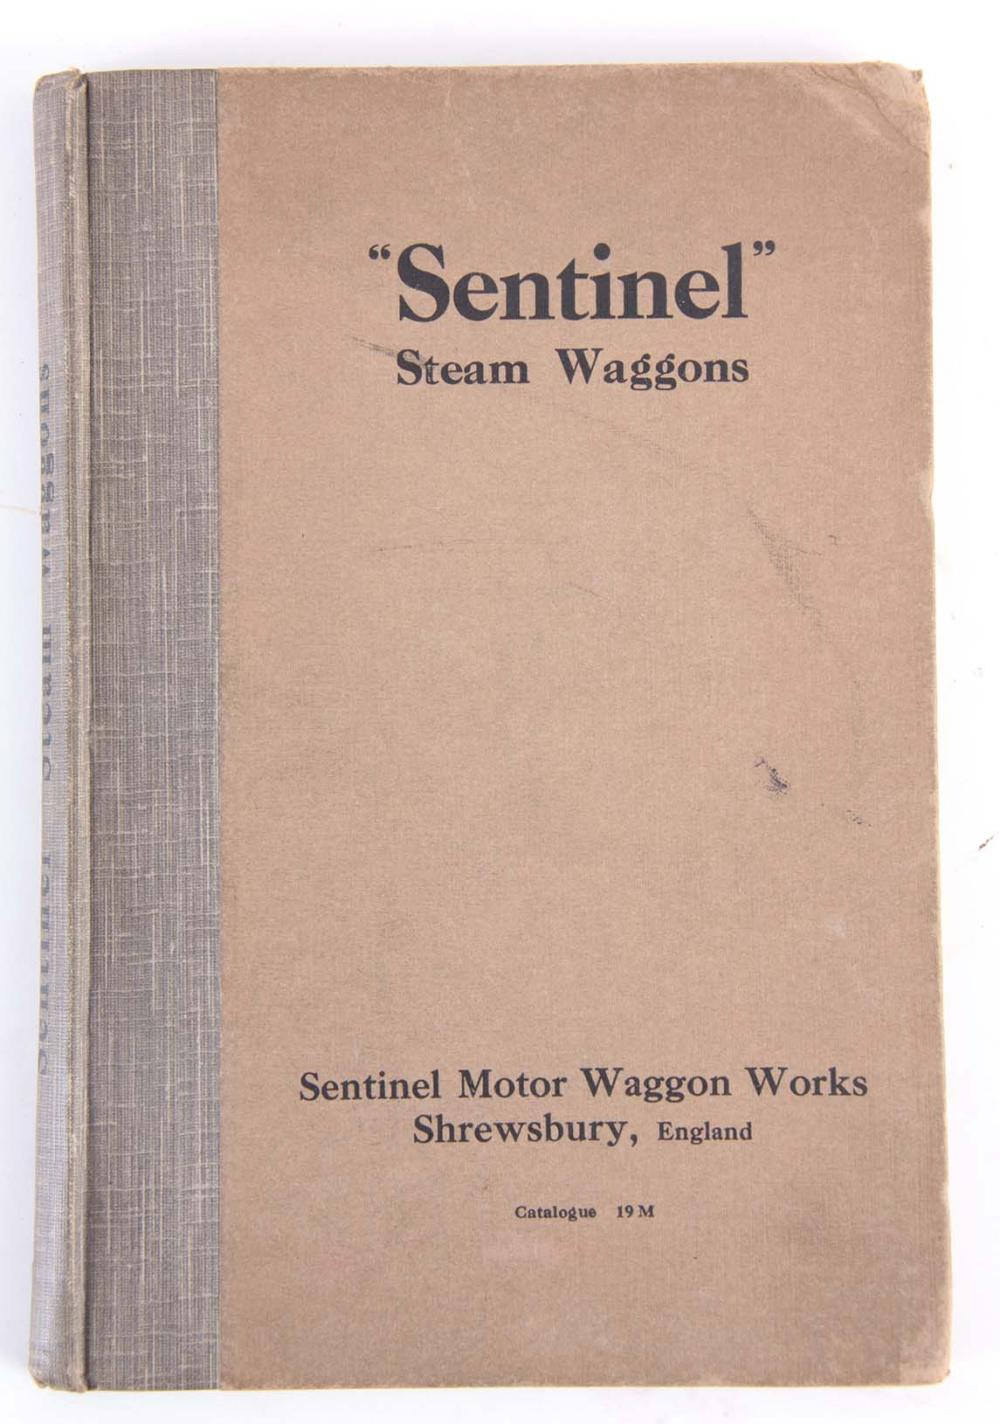 A RARE SENTINEL STEAM WAGGONS CATALOGUE by Sentine